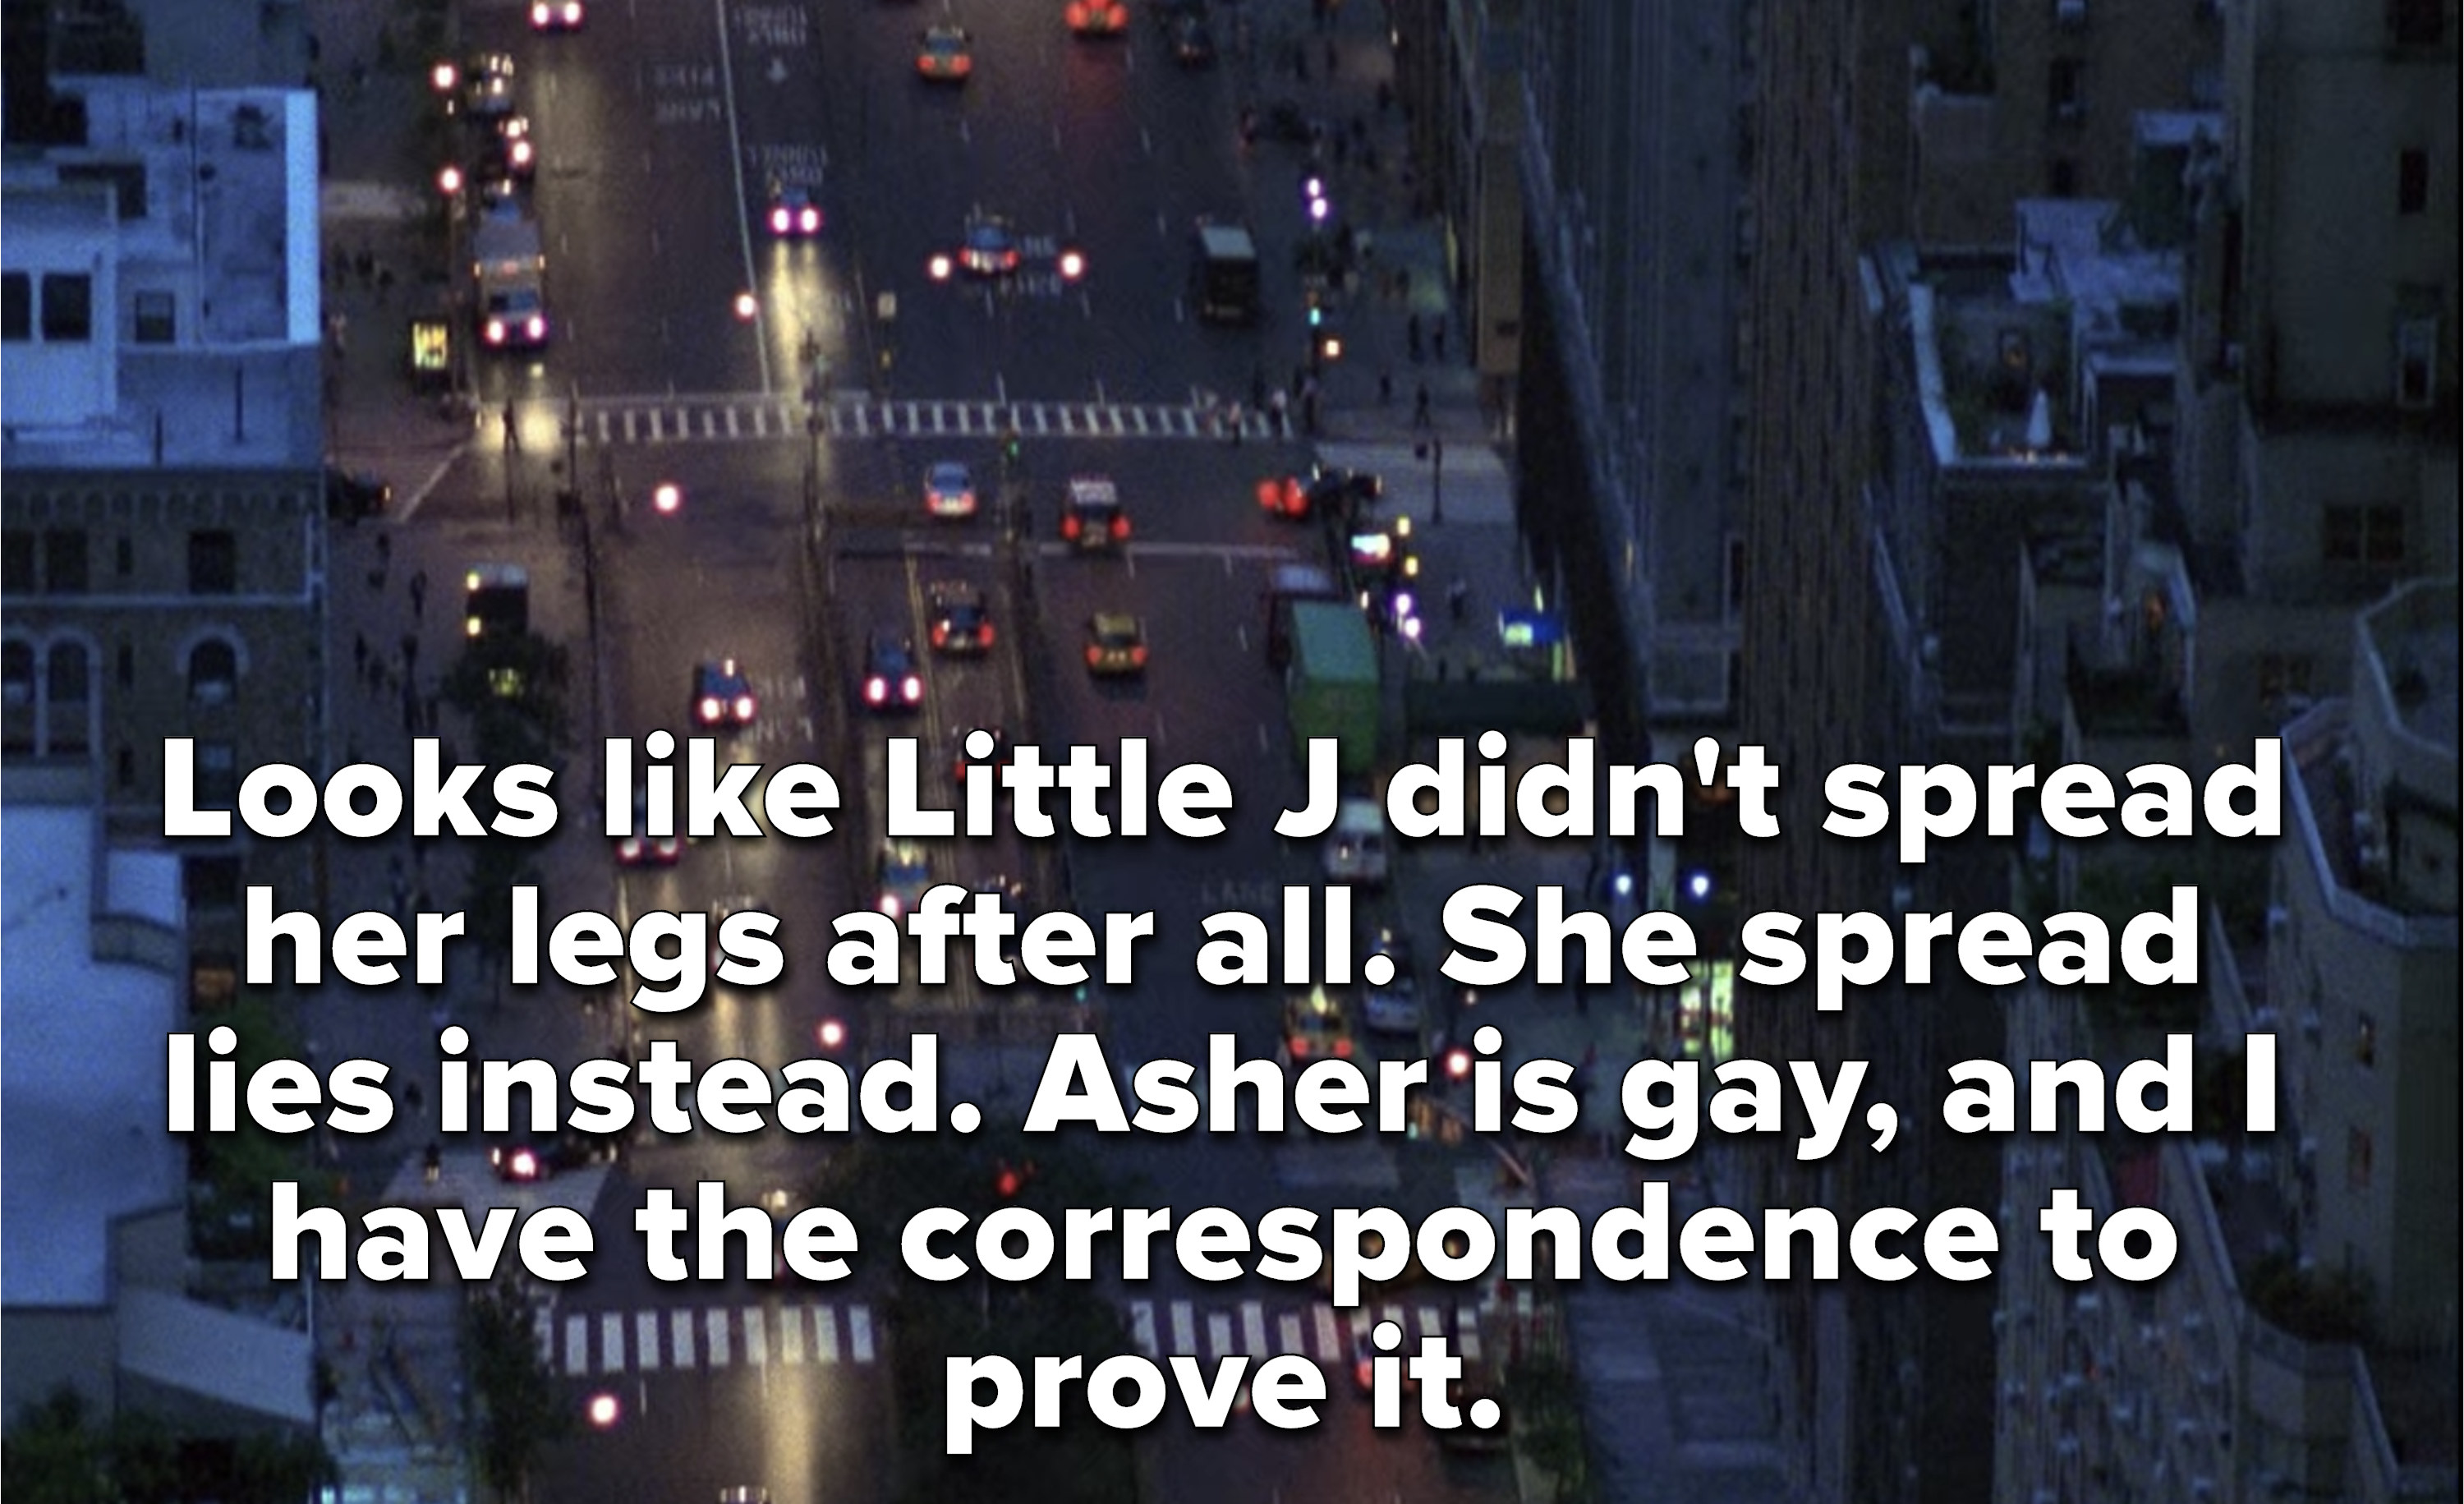 """Gossip Girl blast that says """"Looks like Little J didn't spread her legs after all. She spread lies instead. Asher is guy, and I have the correspondence to prove it"""""""